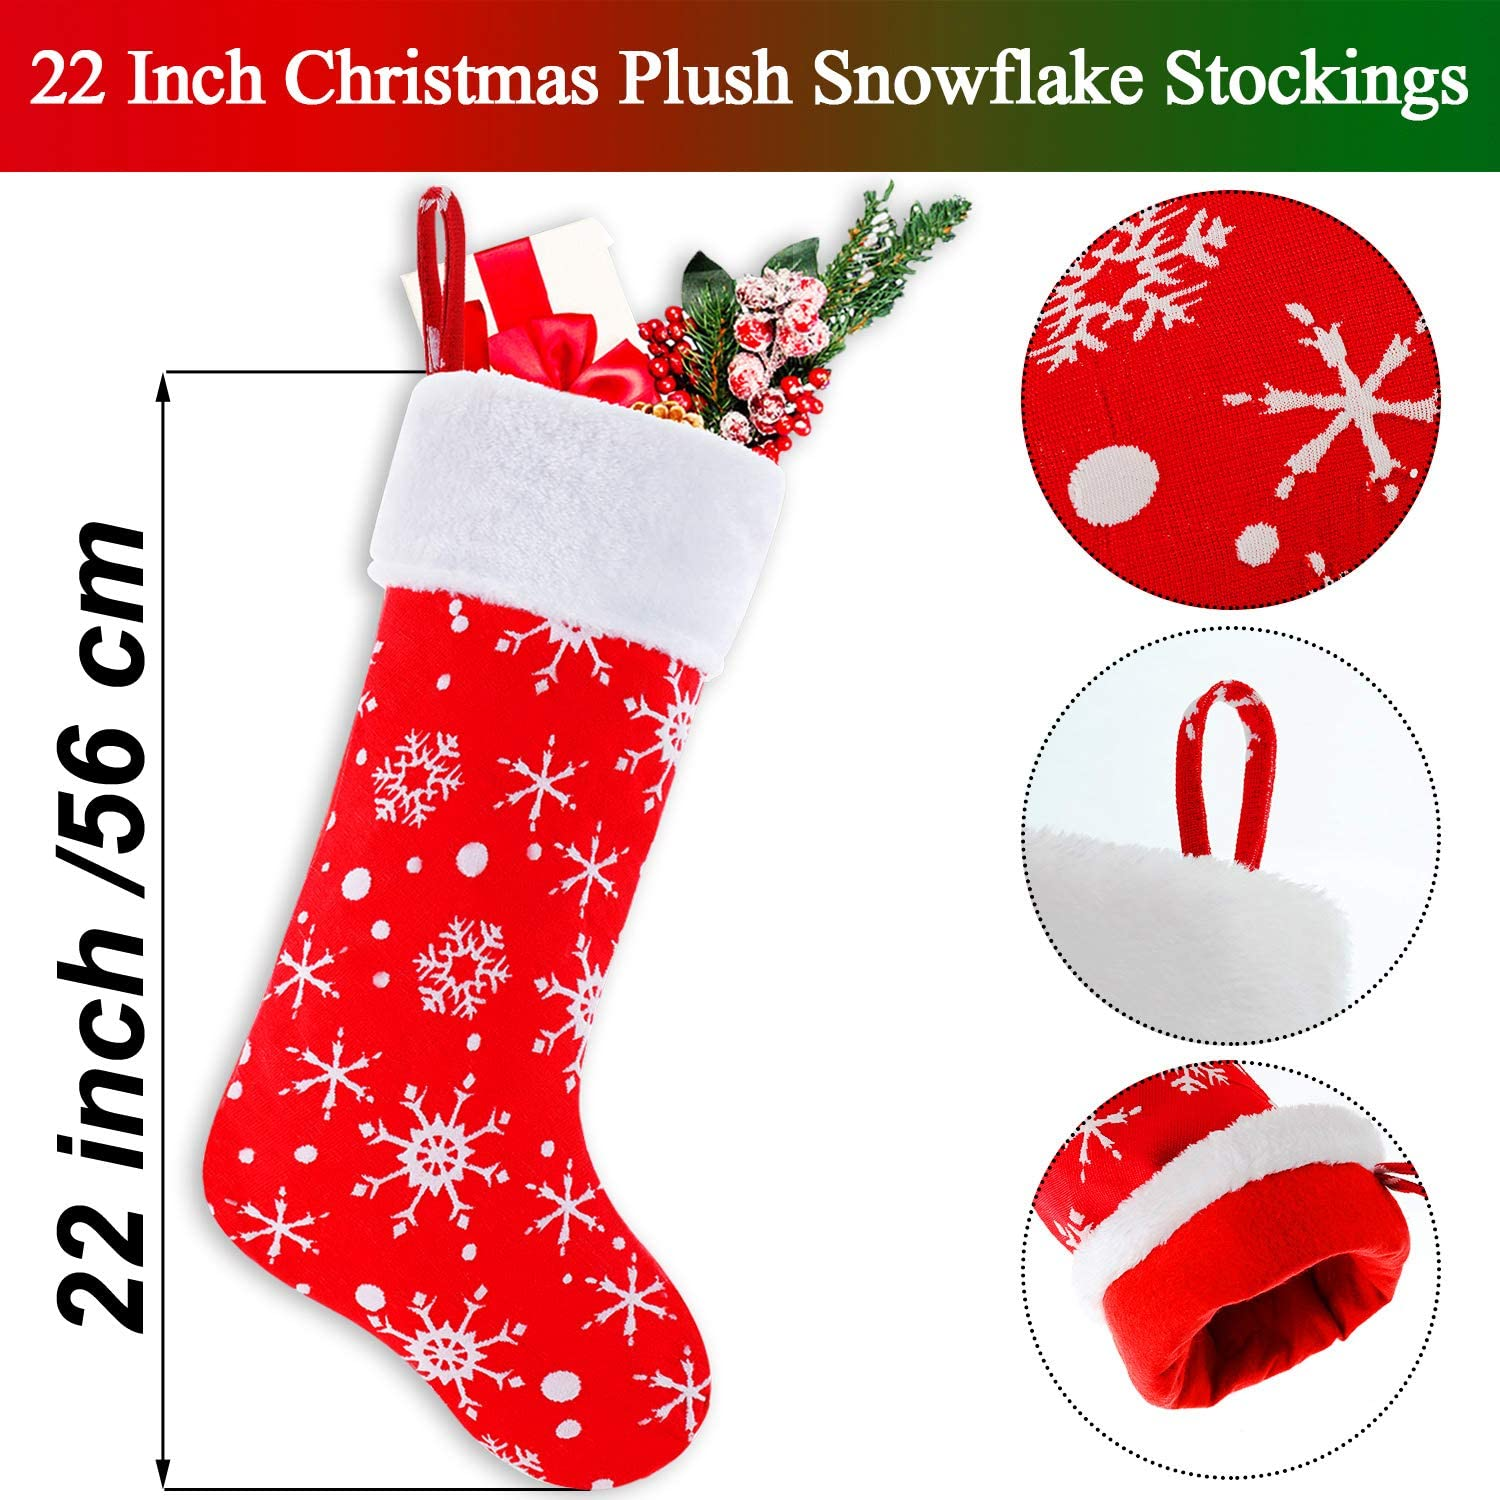 Syhood 3 Pieces 22 Inch Christmas Snowflake Stockings Red and White Plush Stockings Xmas Hanging Stocking for Christmas Decoration Favors